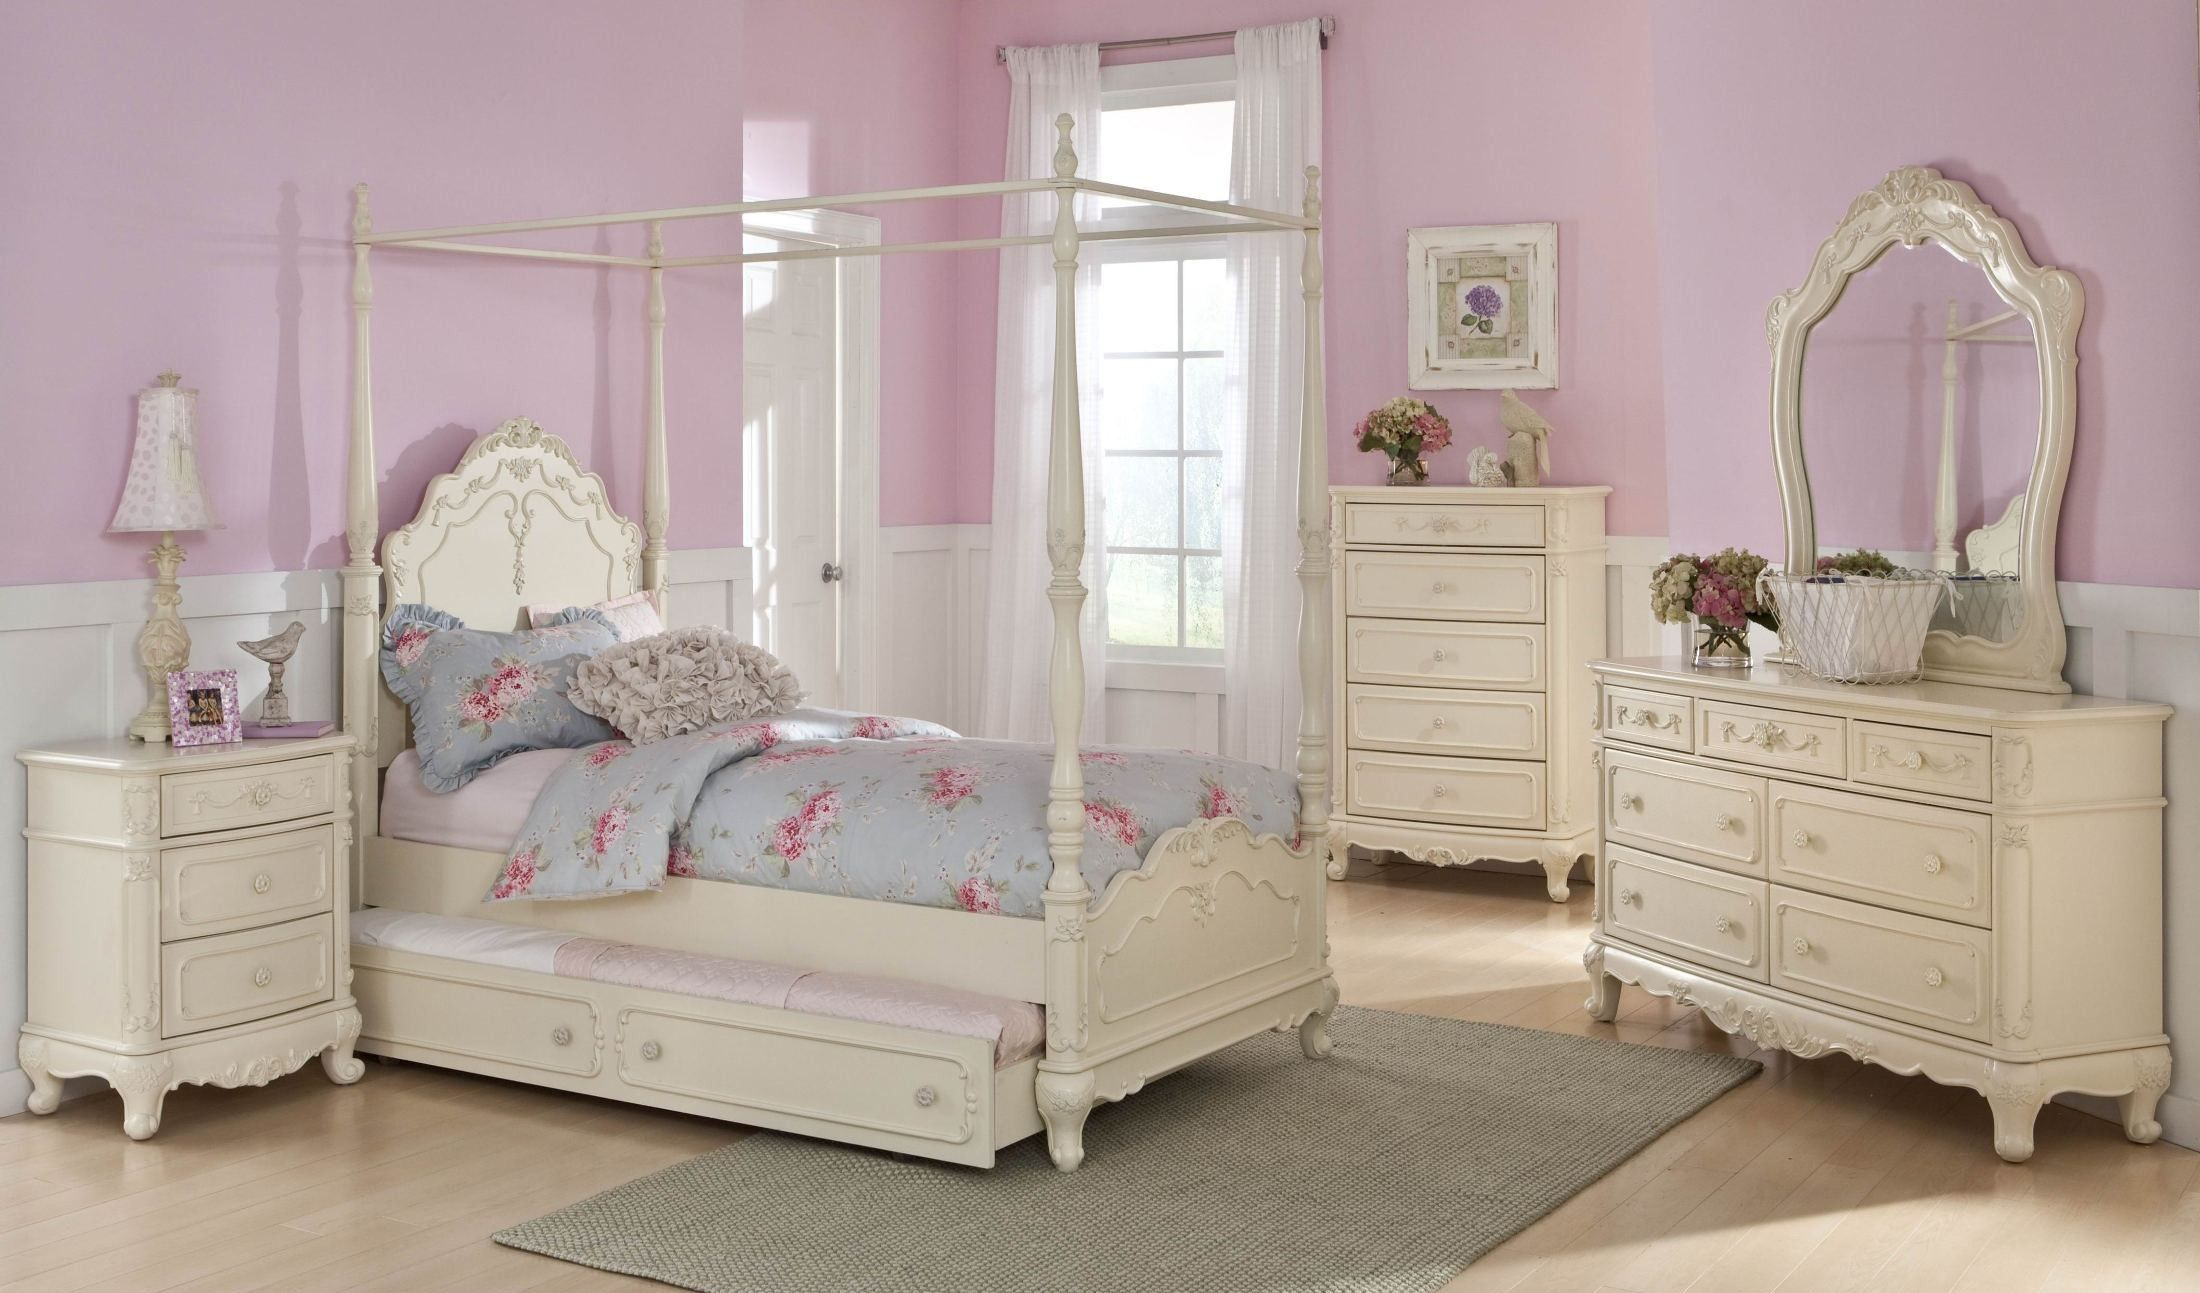 Cinderella Youth Canopy Poster Bedroom Set | Girls bedroom ...